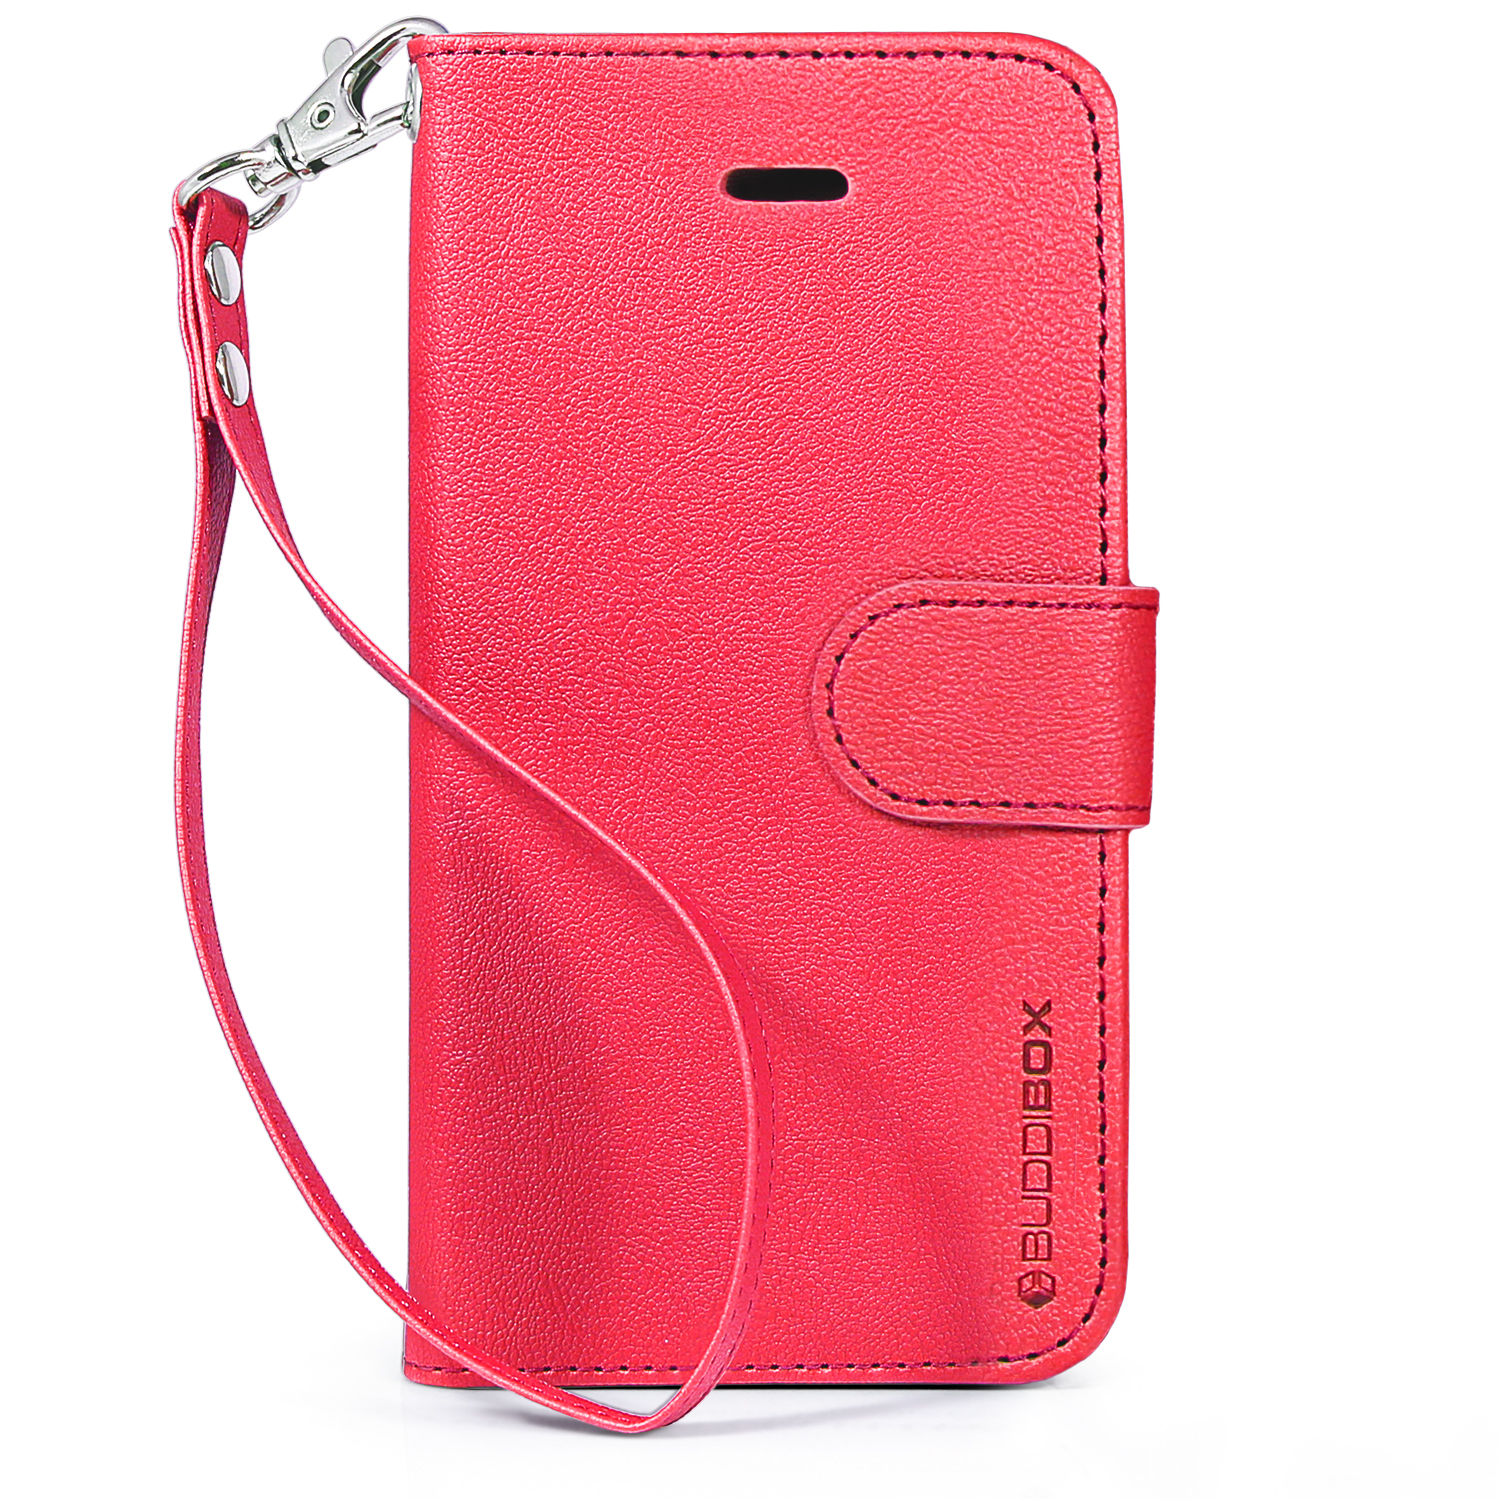 iphone 5c wallet case buddibox premium leather wallet for apple iphone 5c 14714